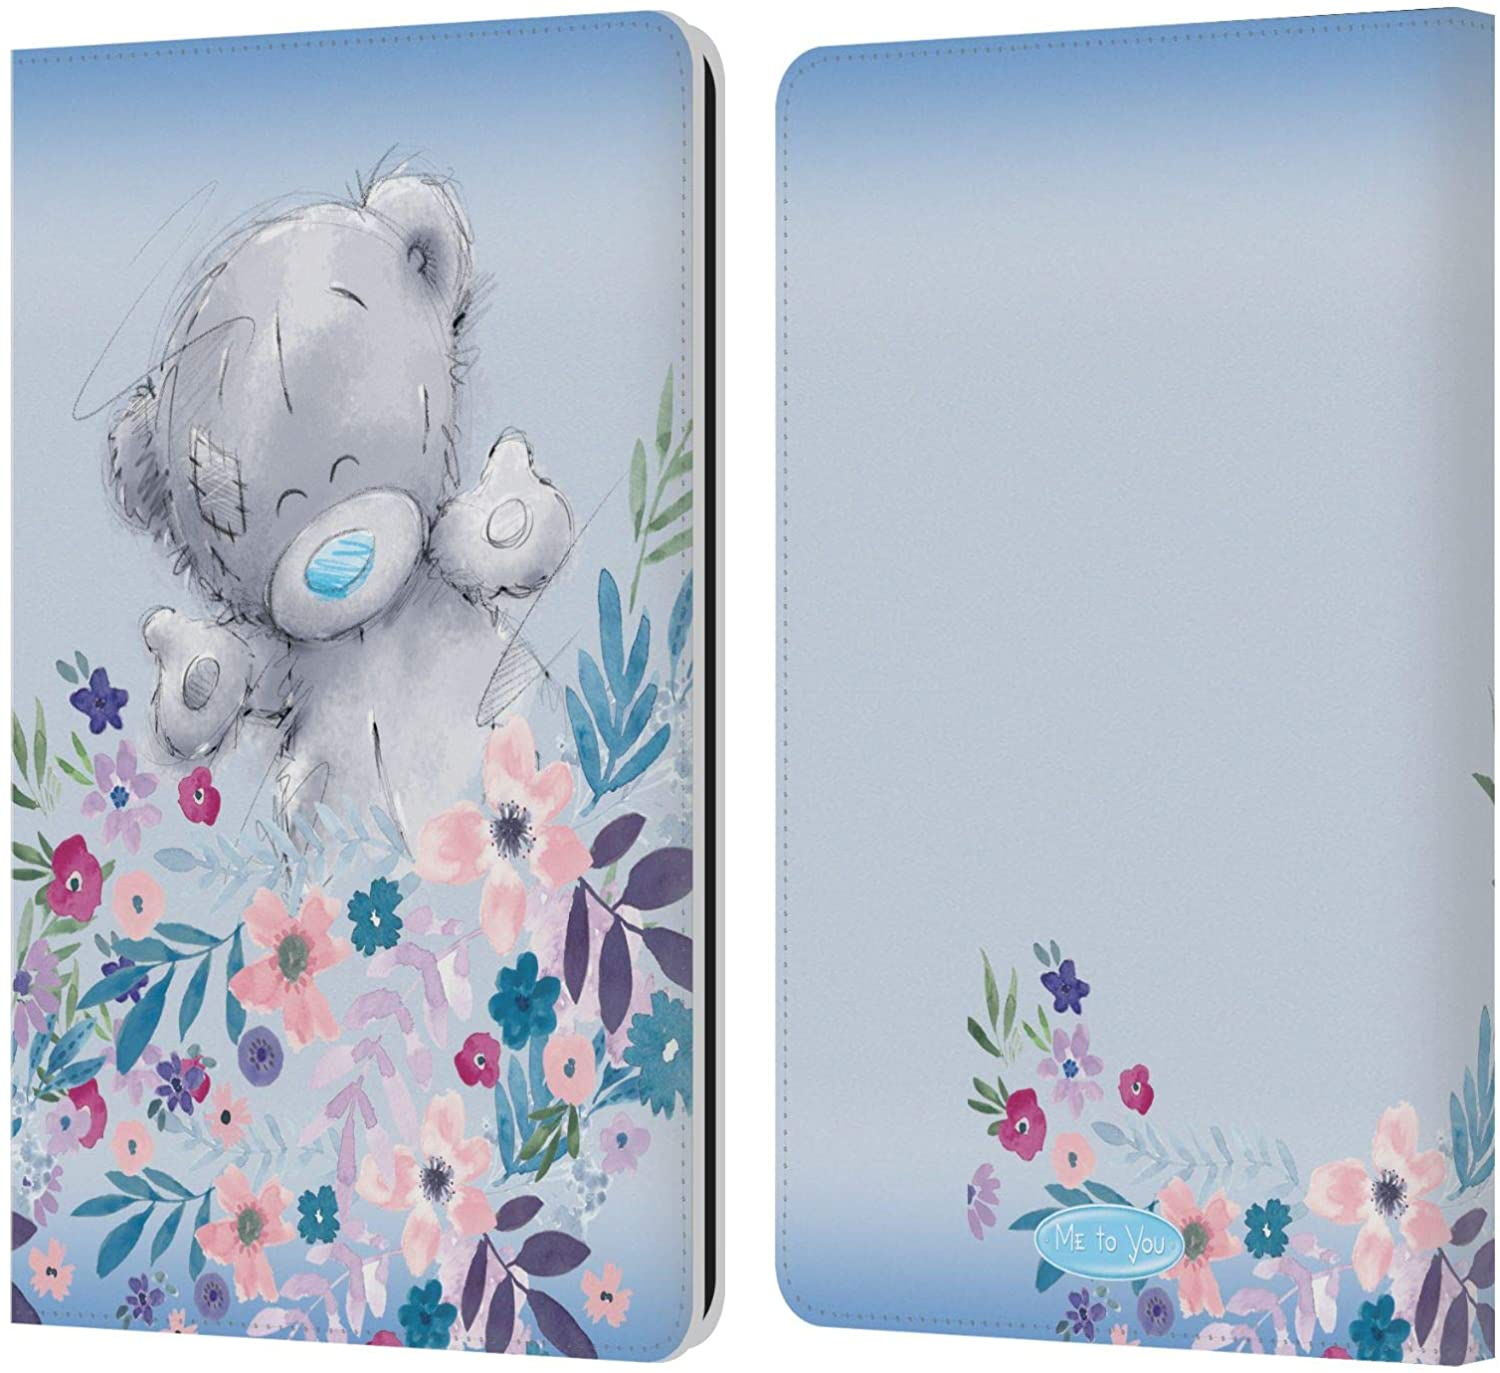 Head Case Designs Officially Licensed Me to You for You Soft Focus Leather Book Wallet Case Cover Compatible with Kindle Paperwhite 1/2 / 3